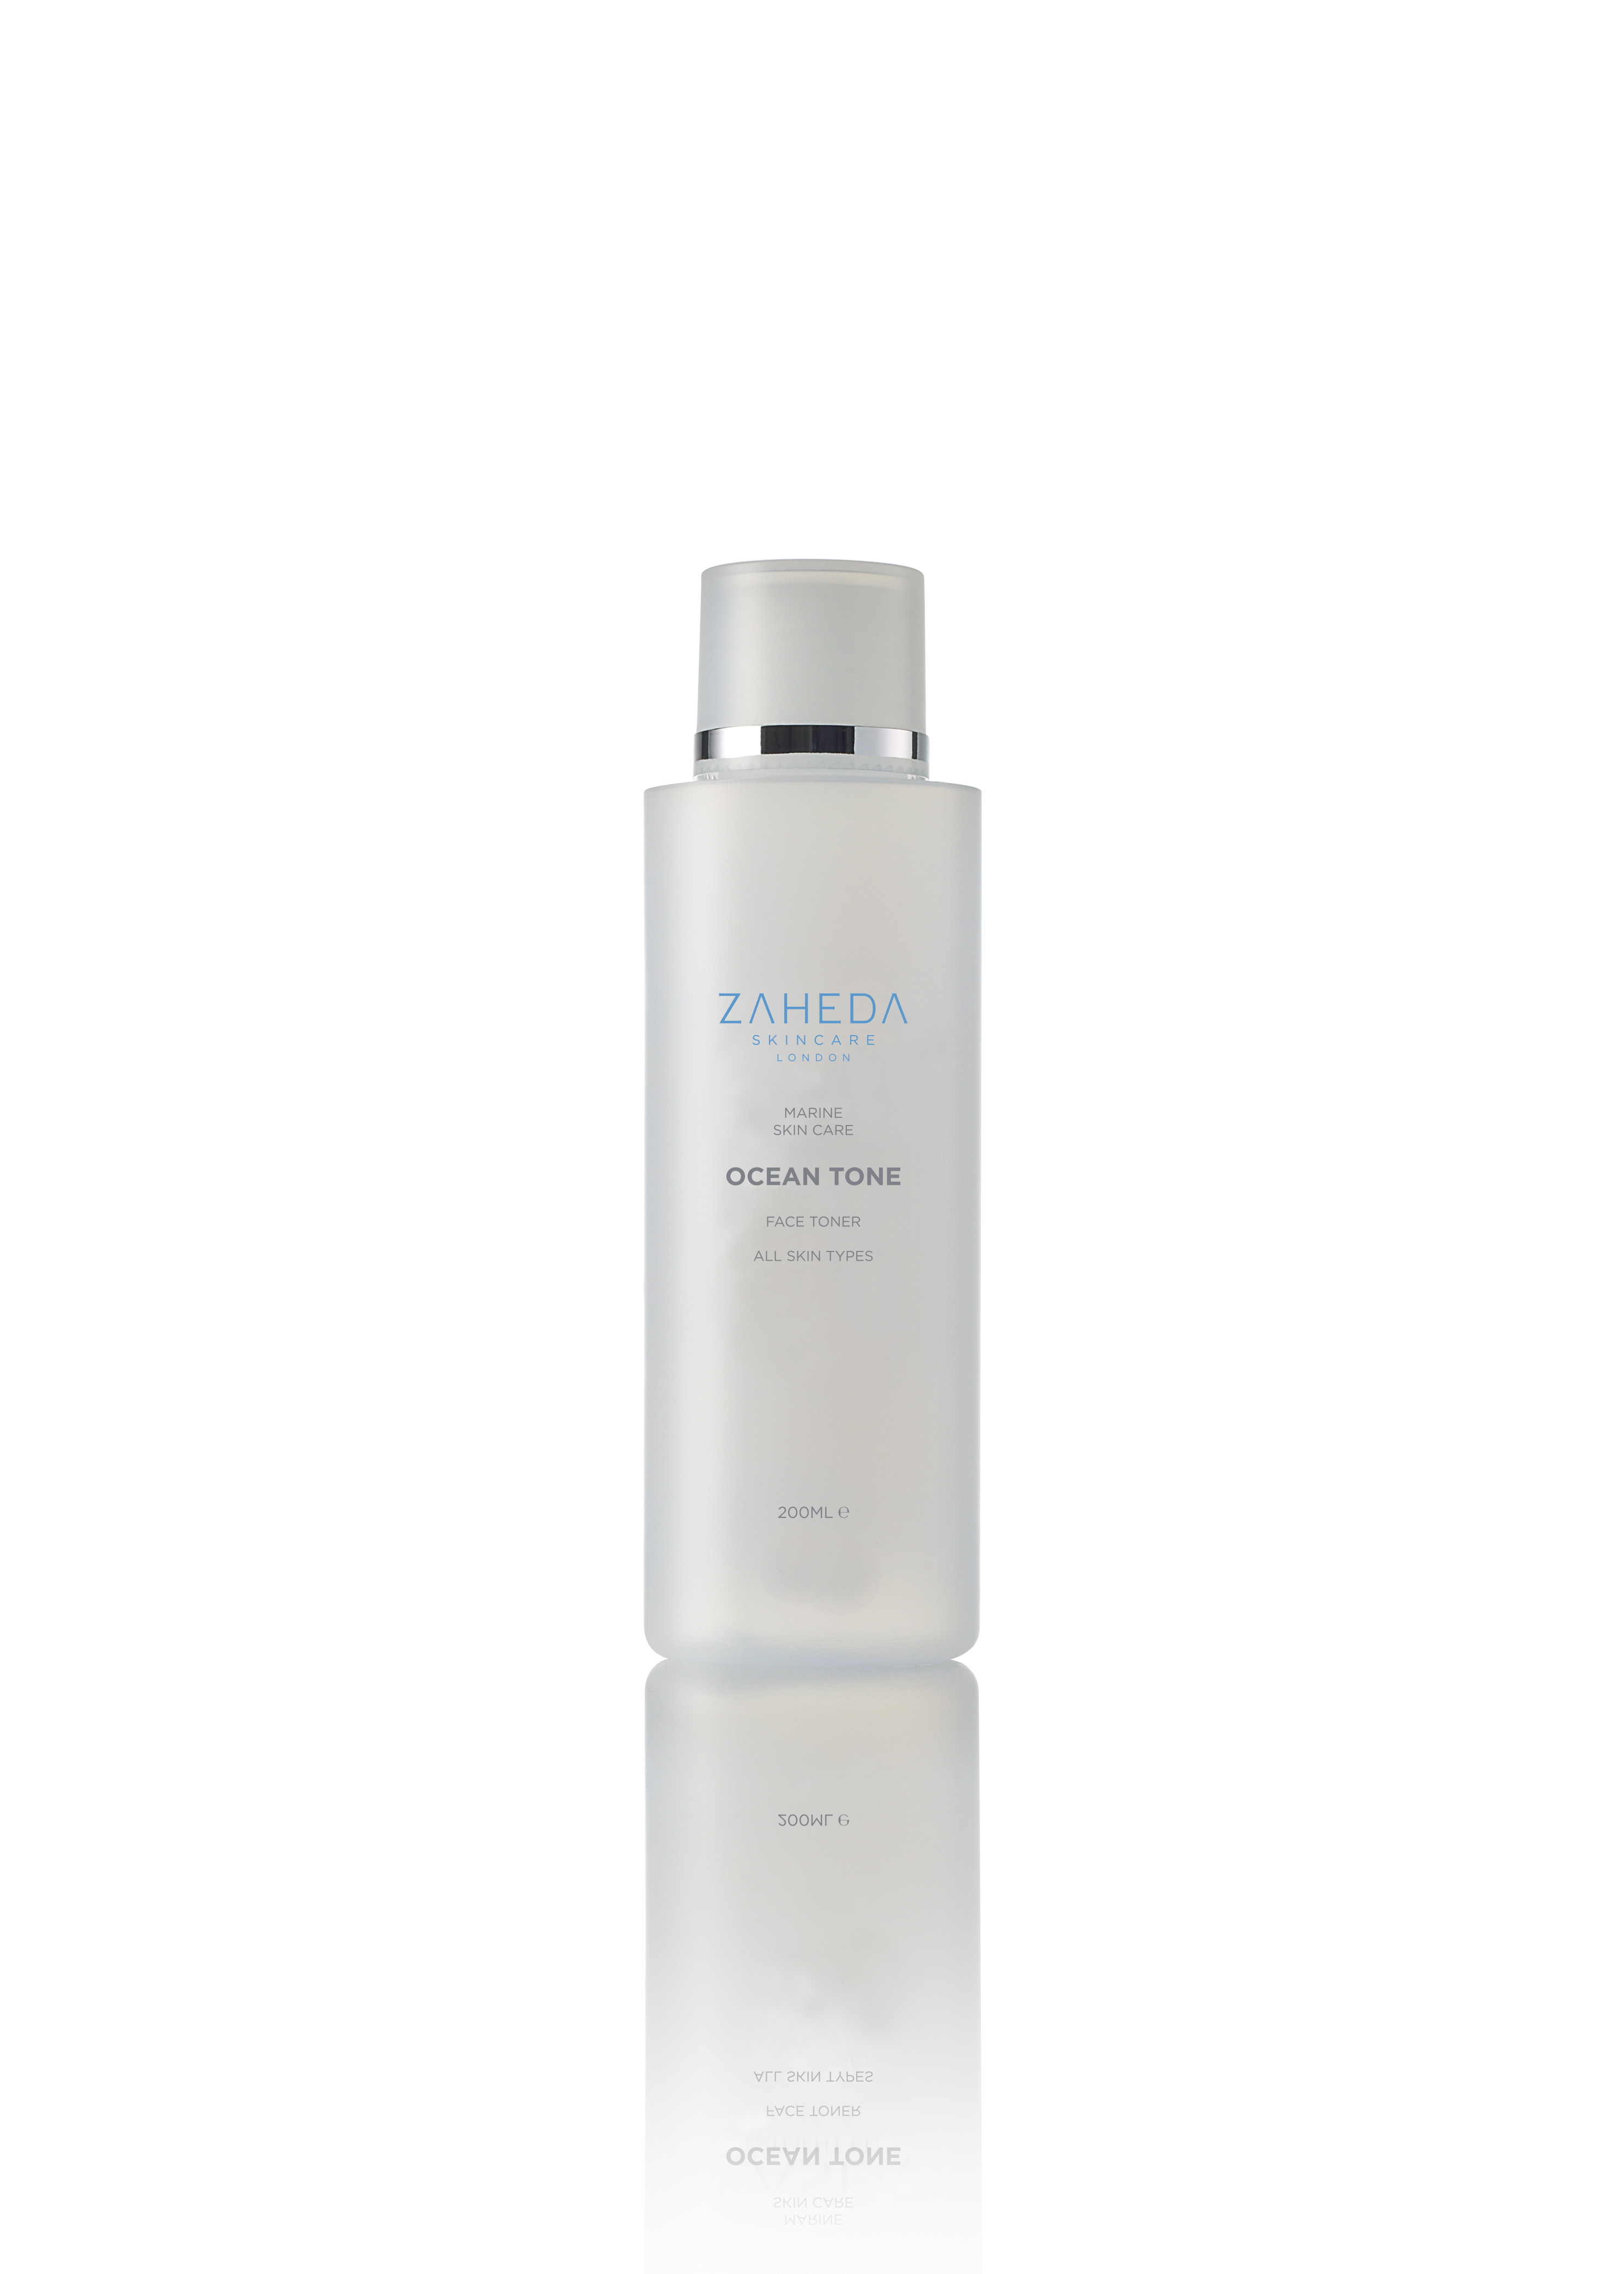 ZAHEDA Skincare London Ocean Tone Face Toner Rose Water